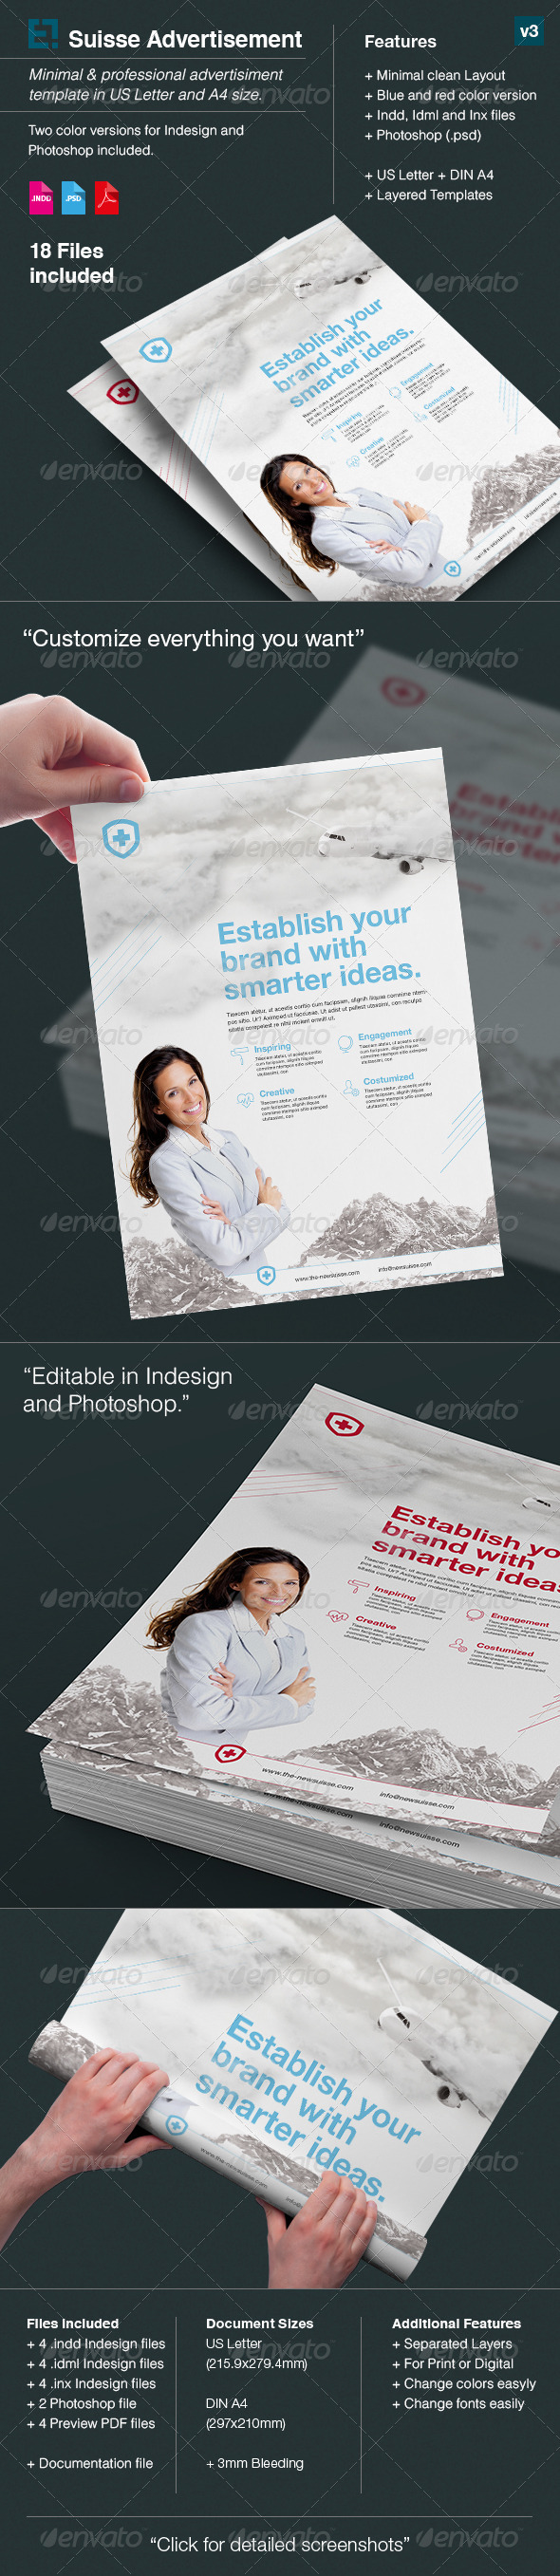 GraphicRiver Suisse Corporate Advert US Letter A4 v3 7837740